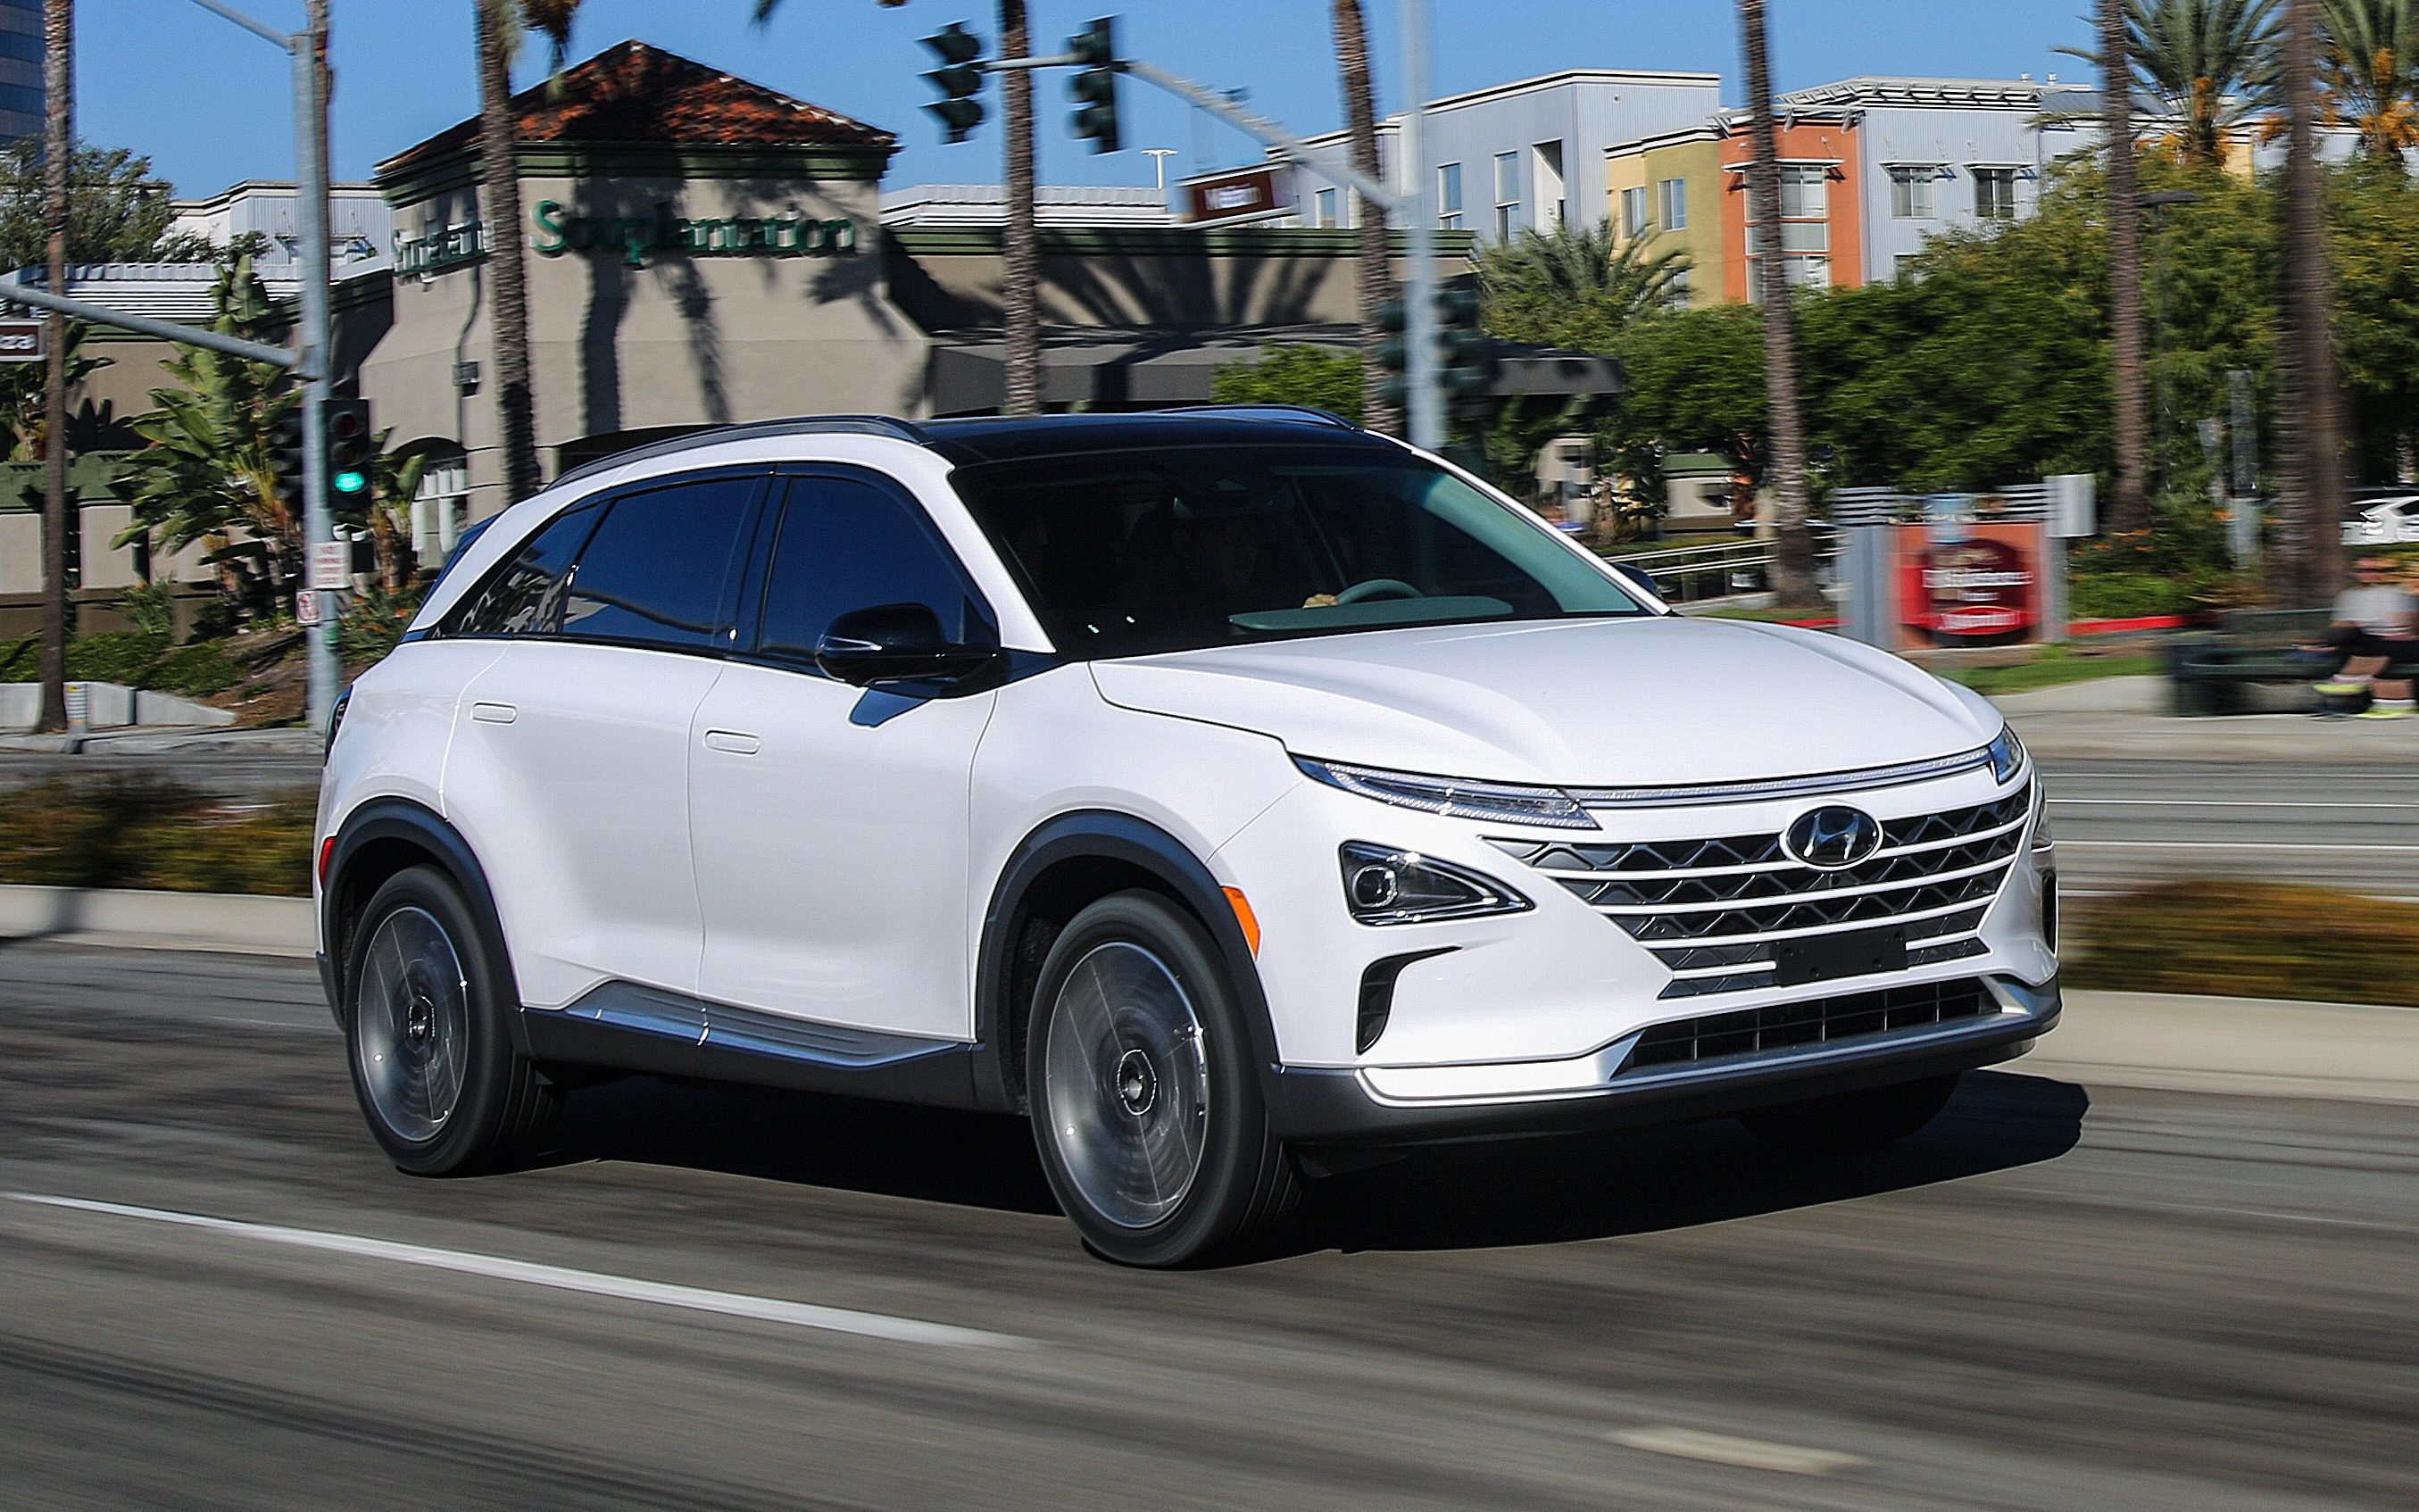 Hyundai Nexo The SUV That Could Make The Market For